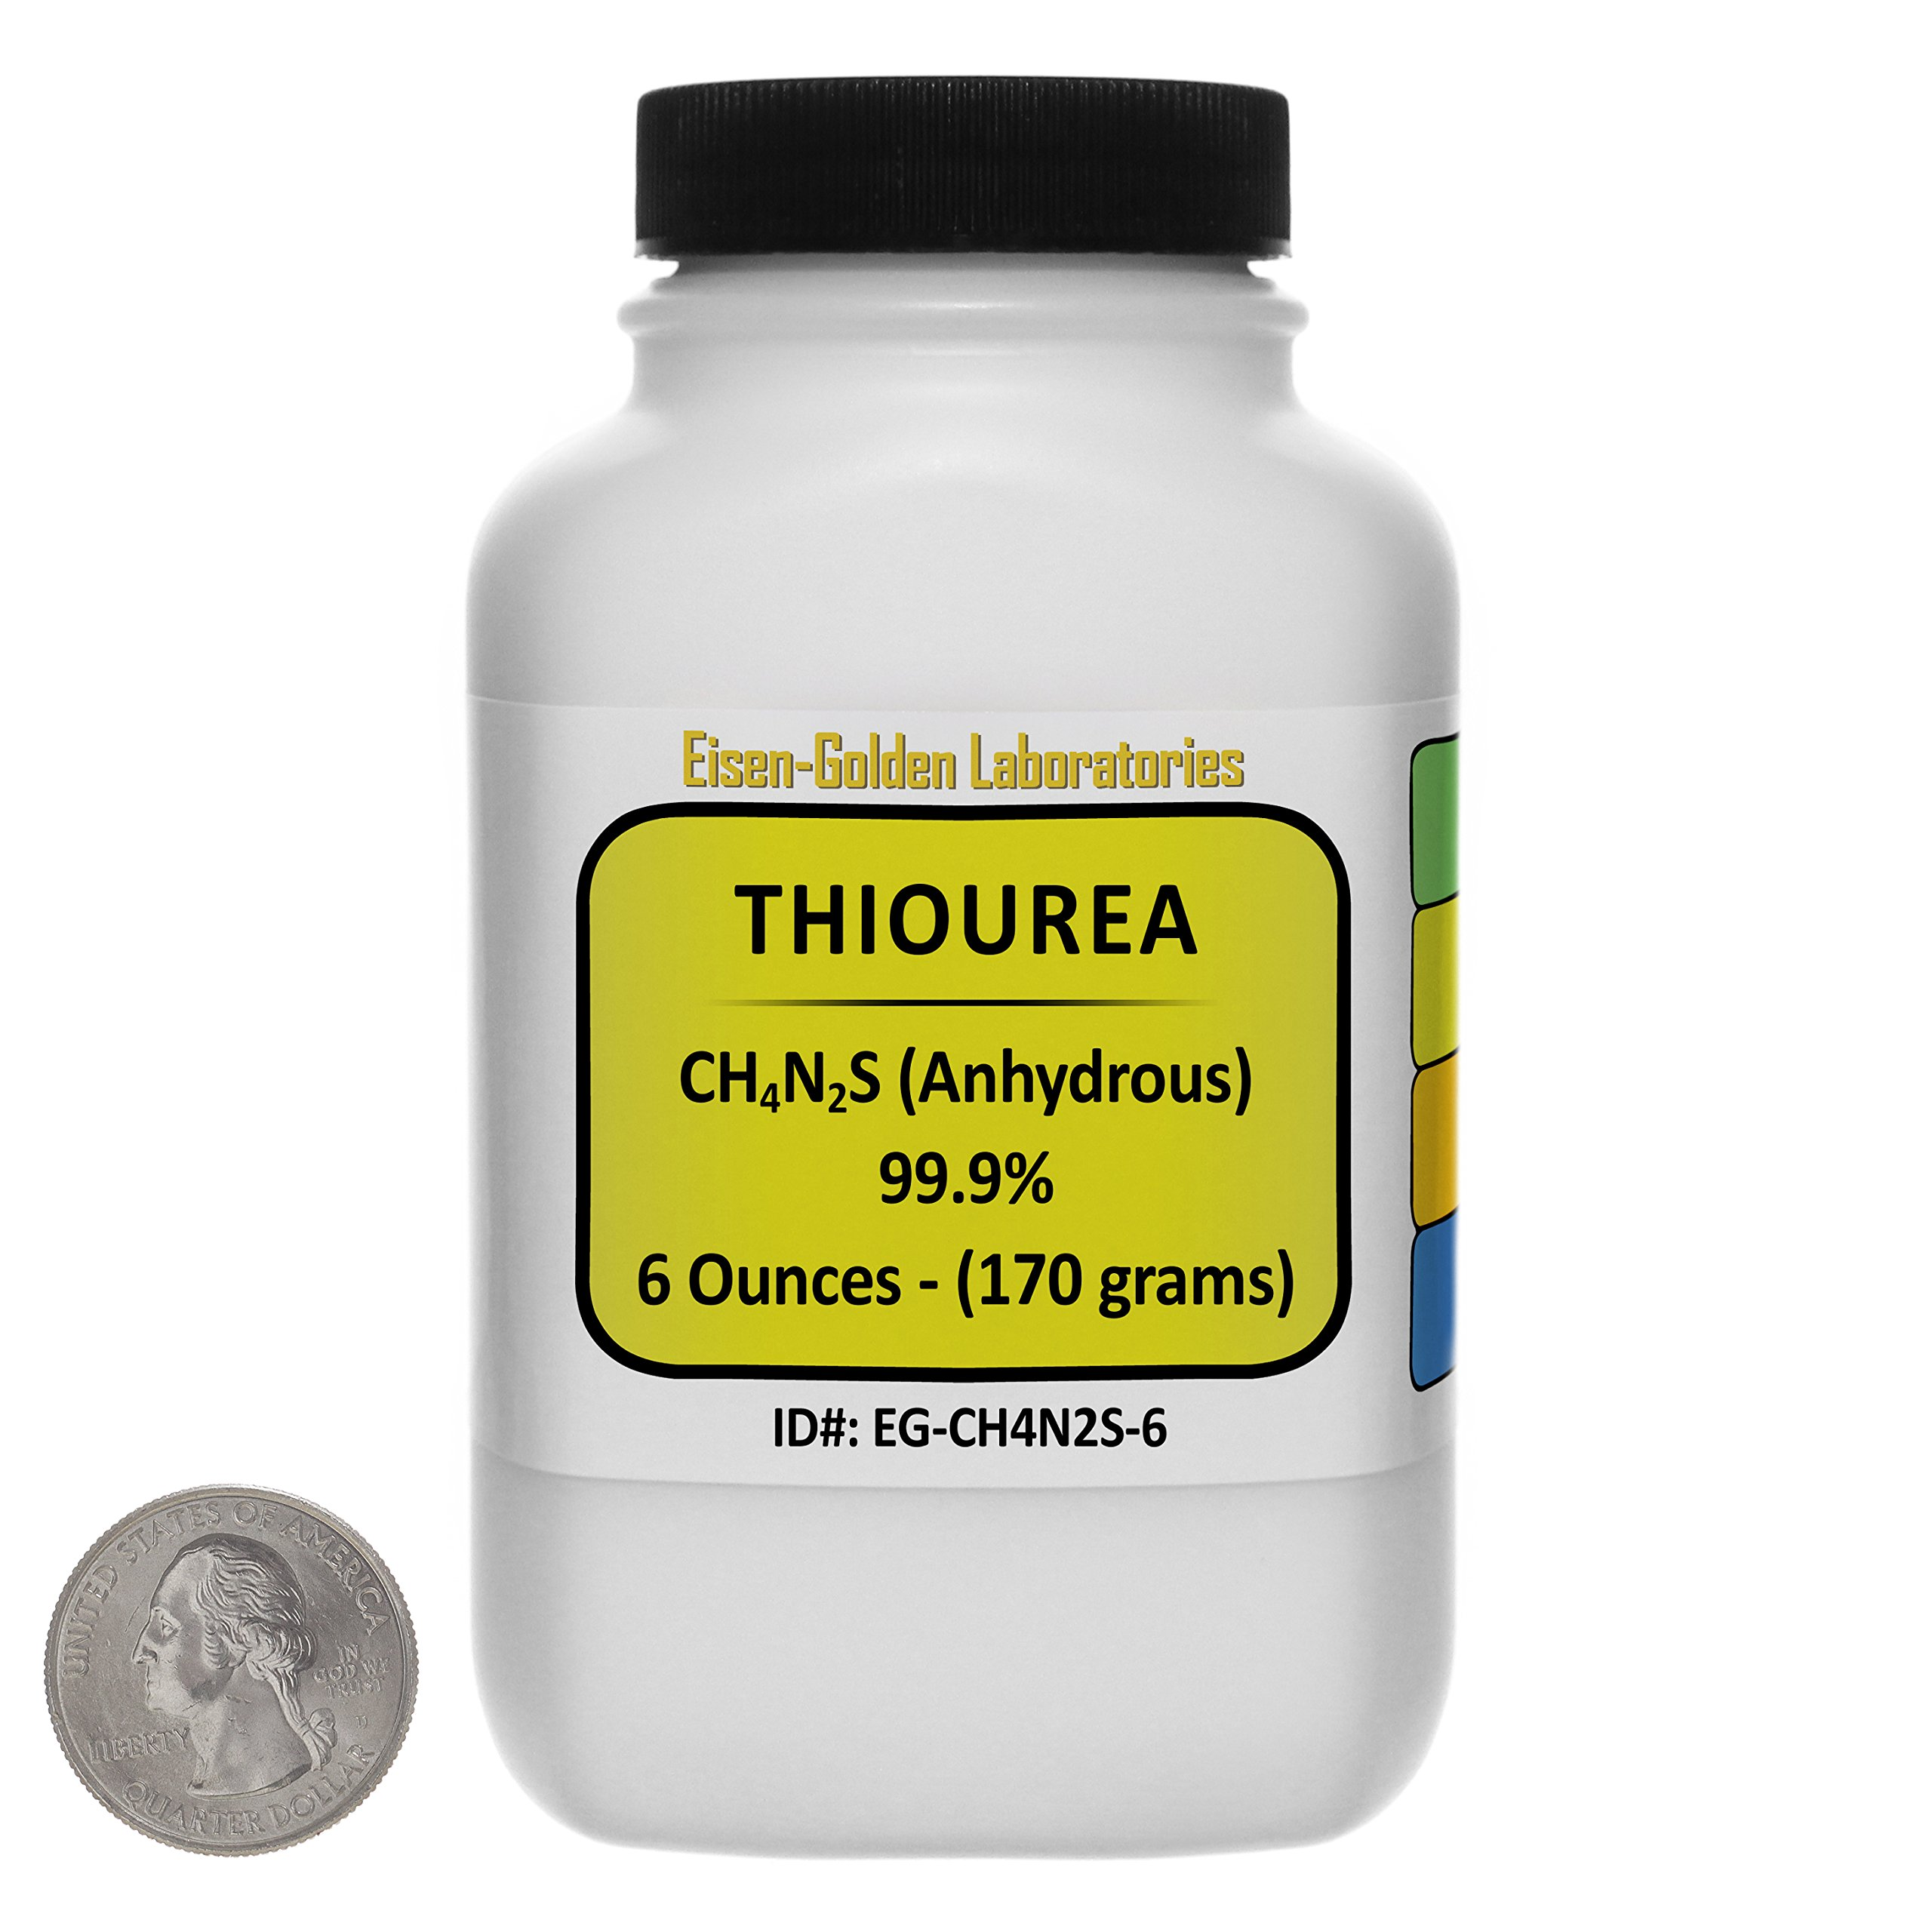 Thiourea [SC(NH2)2] 99.9% ACS Grade Crystals 6 Oz in a Space-Saver Bottle USA by Eisen-Golden Laboratories